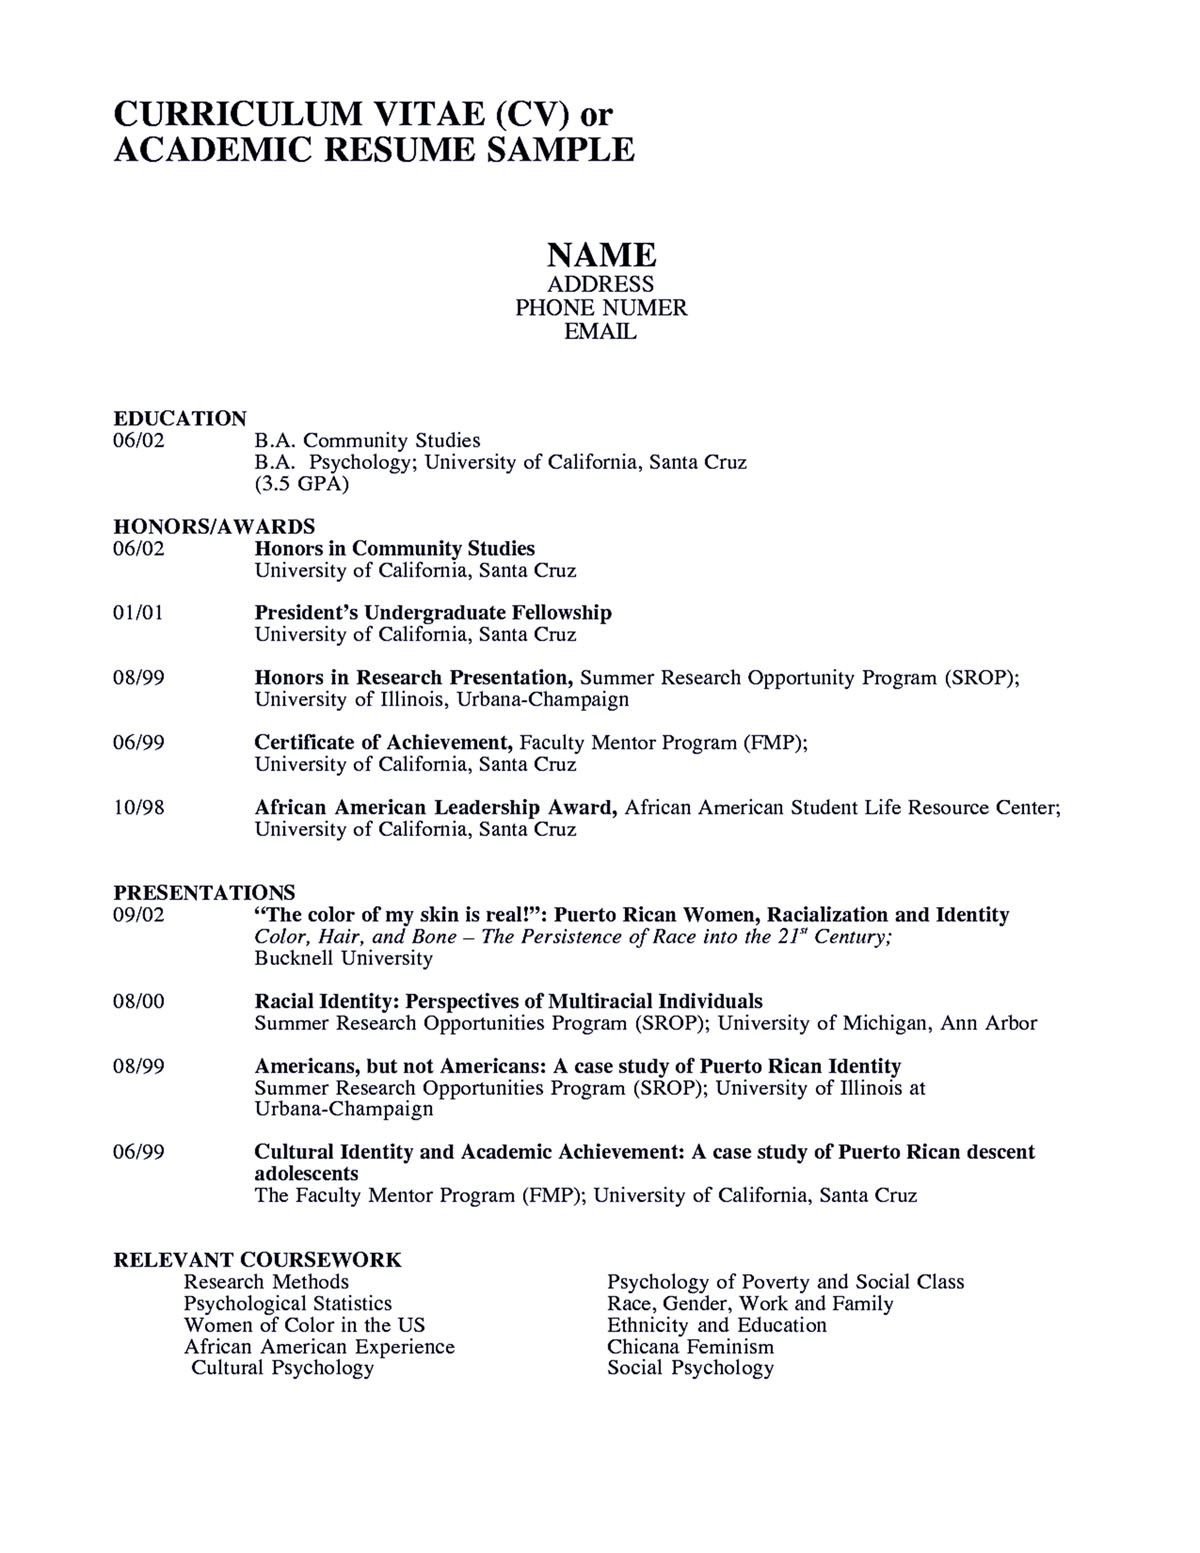 Academic Resume Academic Resume Sample Shows You How To Make Academic Resume